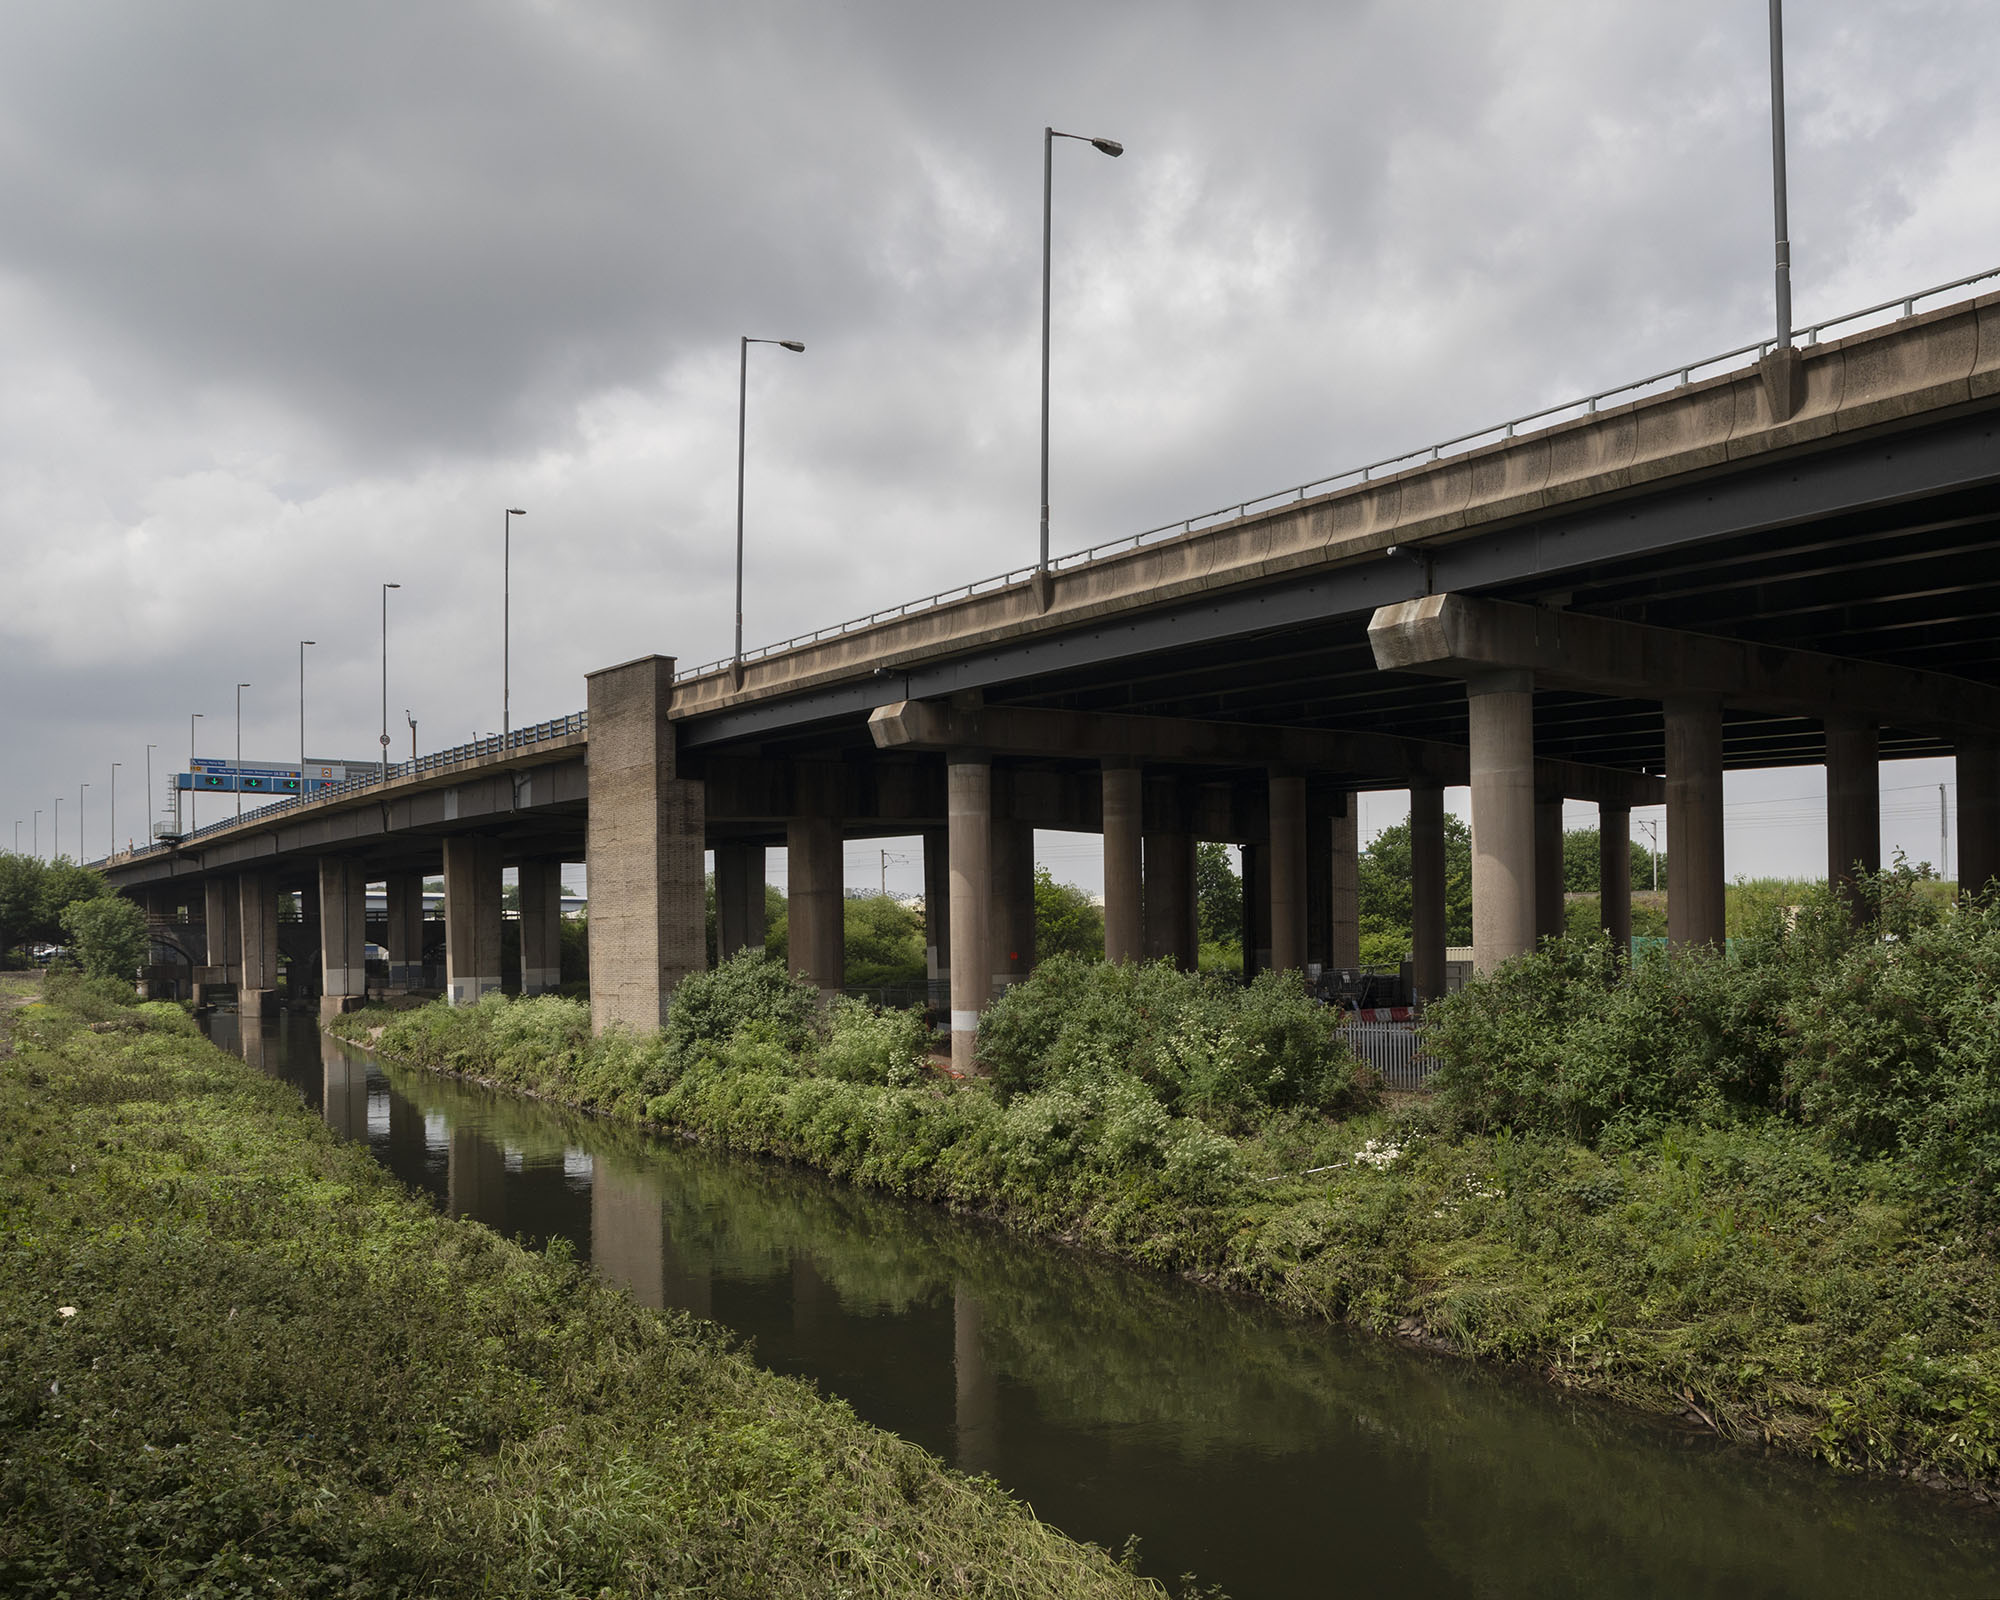 20180531_spaghetti junction_007.jpg